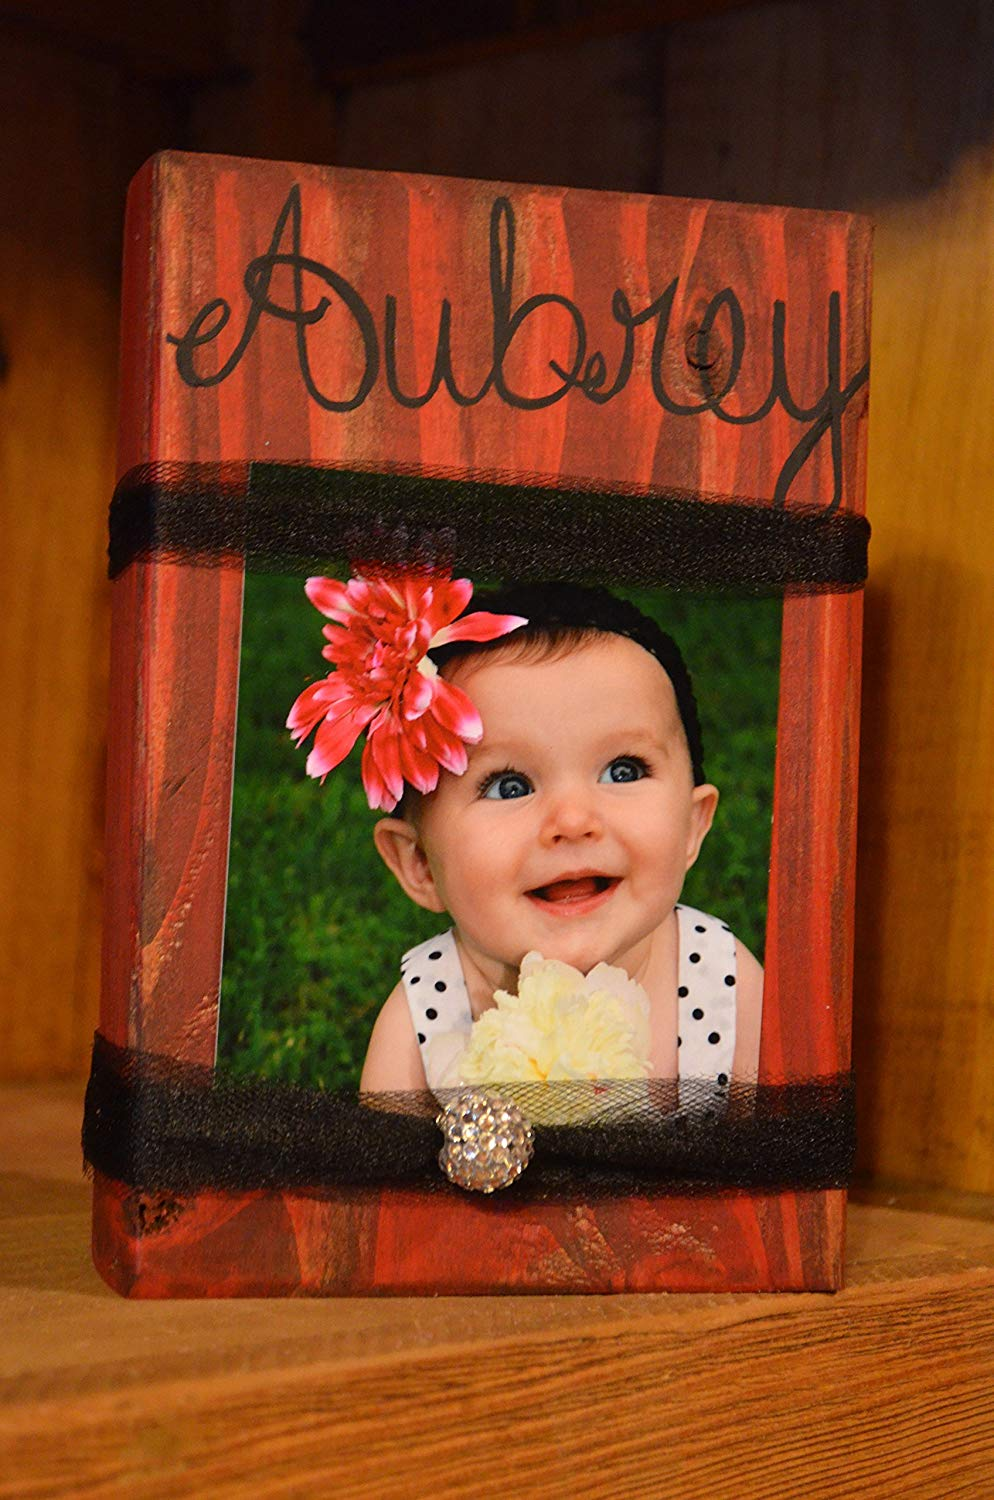 Block Photo Frame, Photo Display, Wood Block Picture Frame, Painted Wood Frames, Wood Block Frame, Wood picture frame, block frames, baby picture frame, personalized picture frame, photo frames, photo frame, picture frame, picture frames, photo frame baby, picture frame gifts, photo frame handmade,